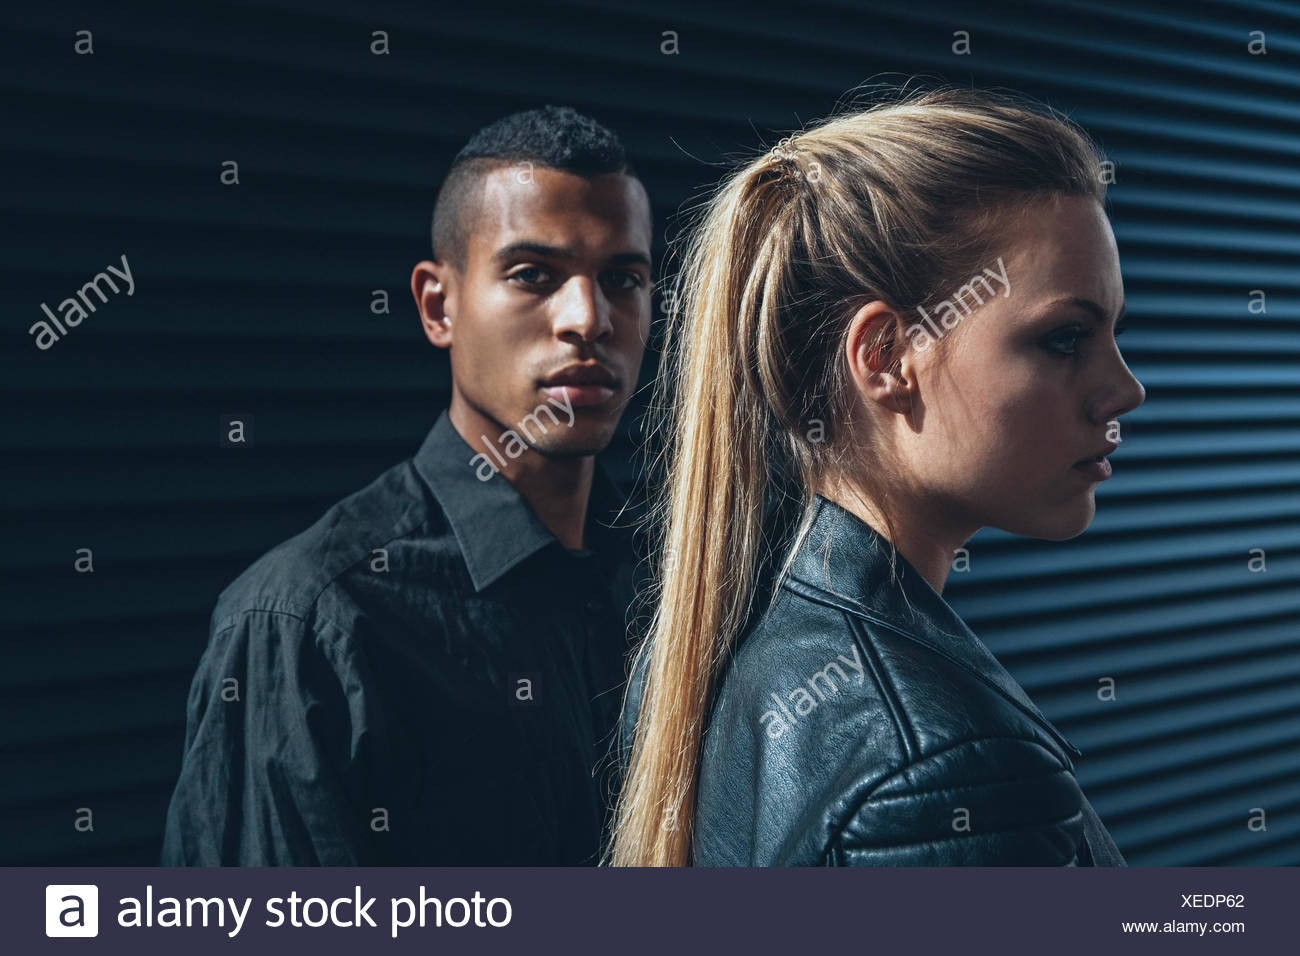 Black dressed young couple in front of black facade - Stock Image